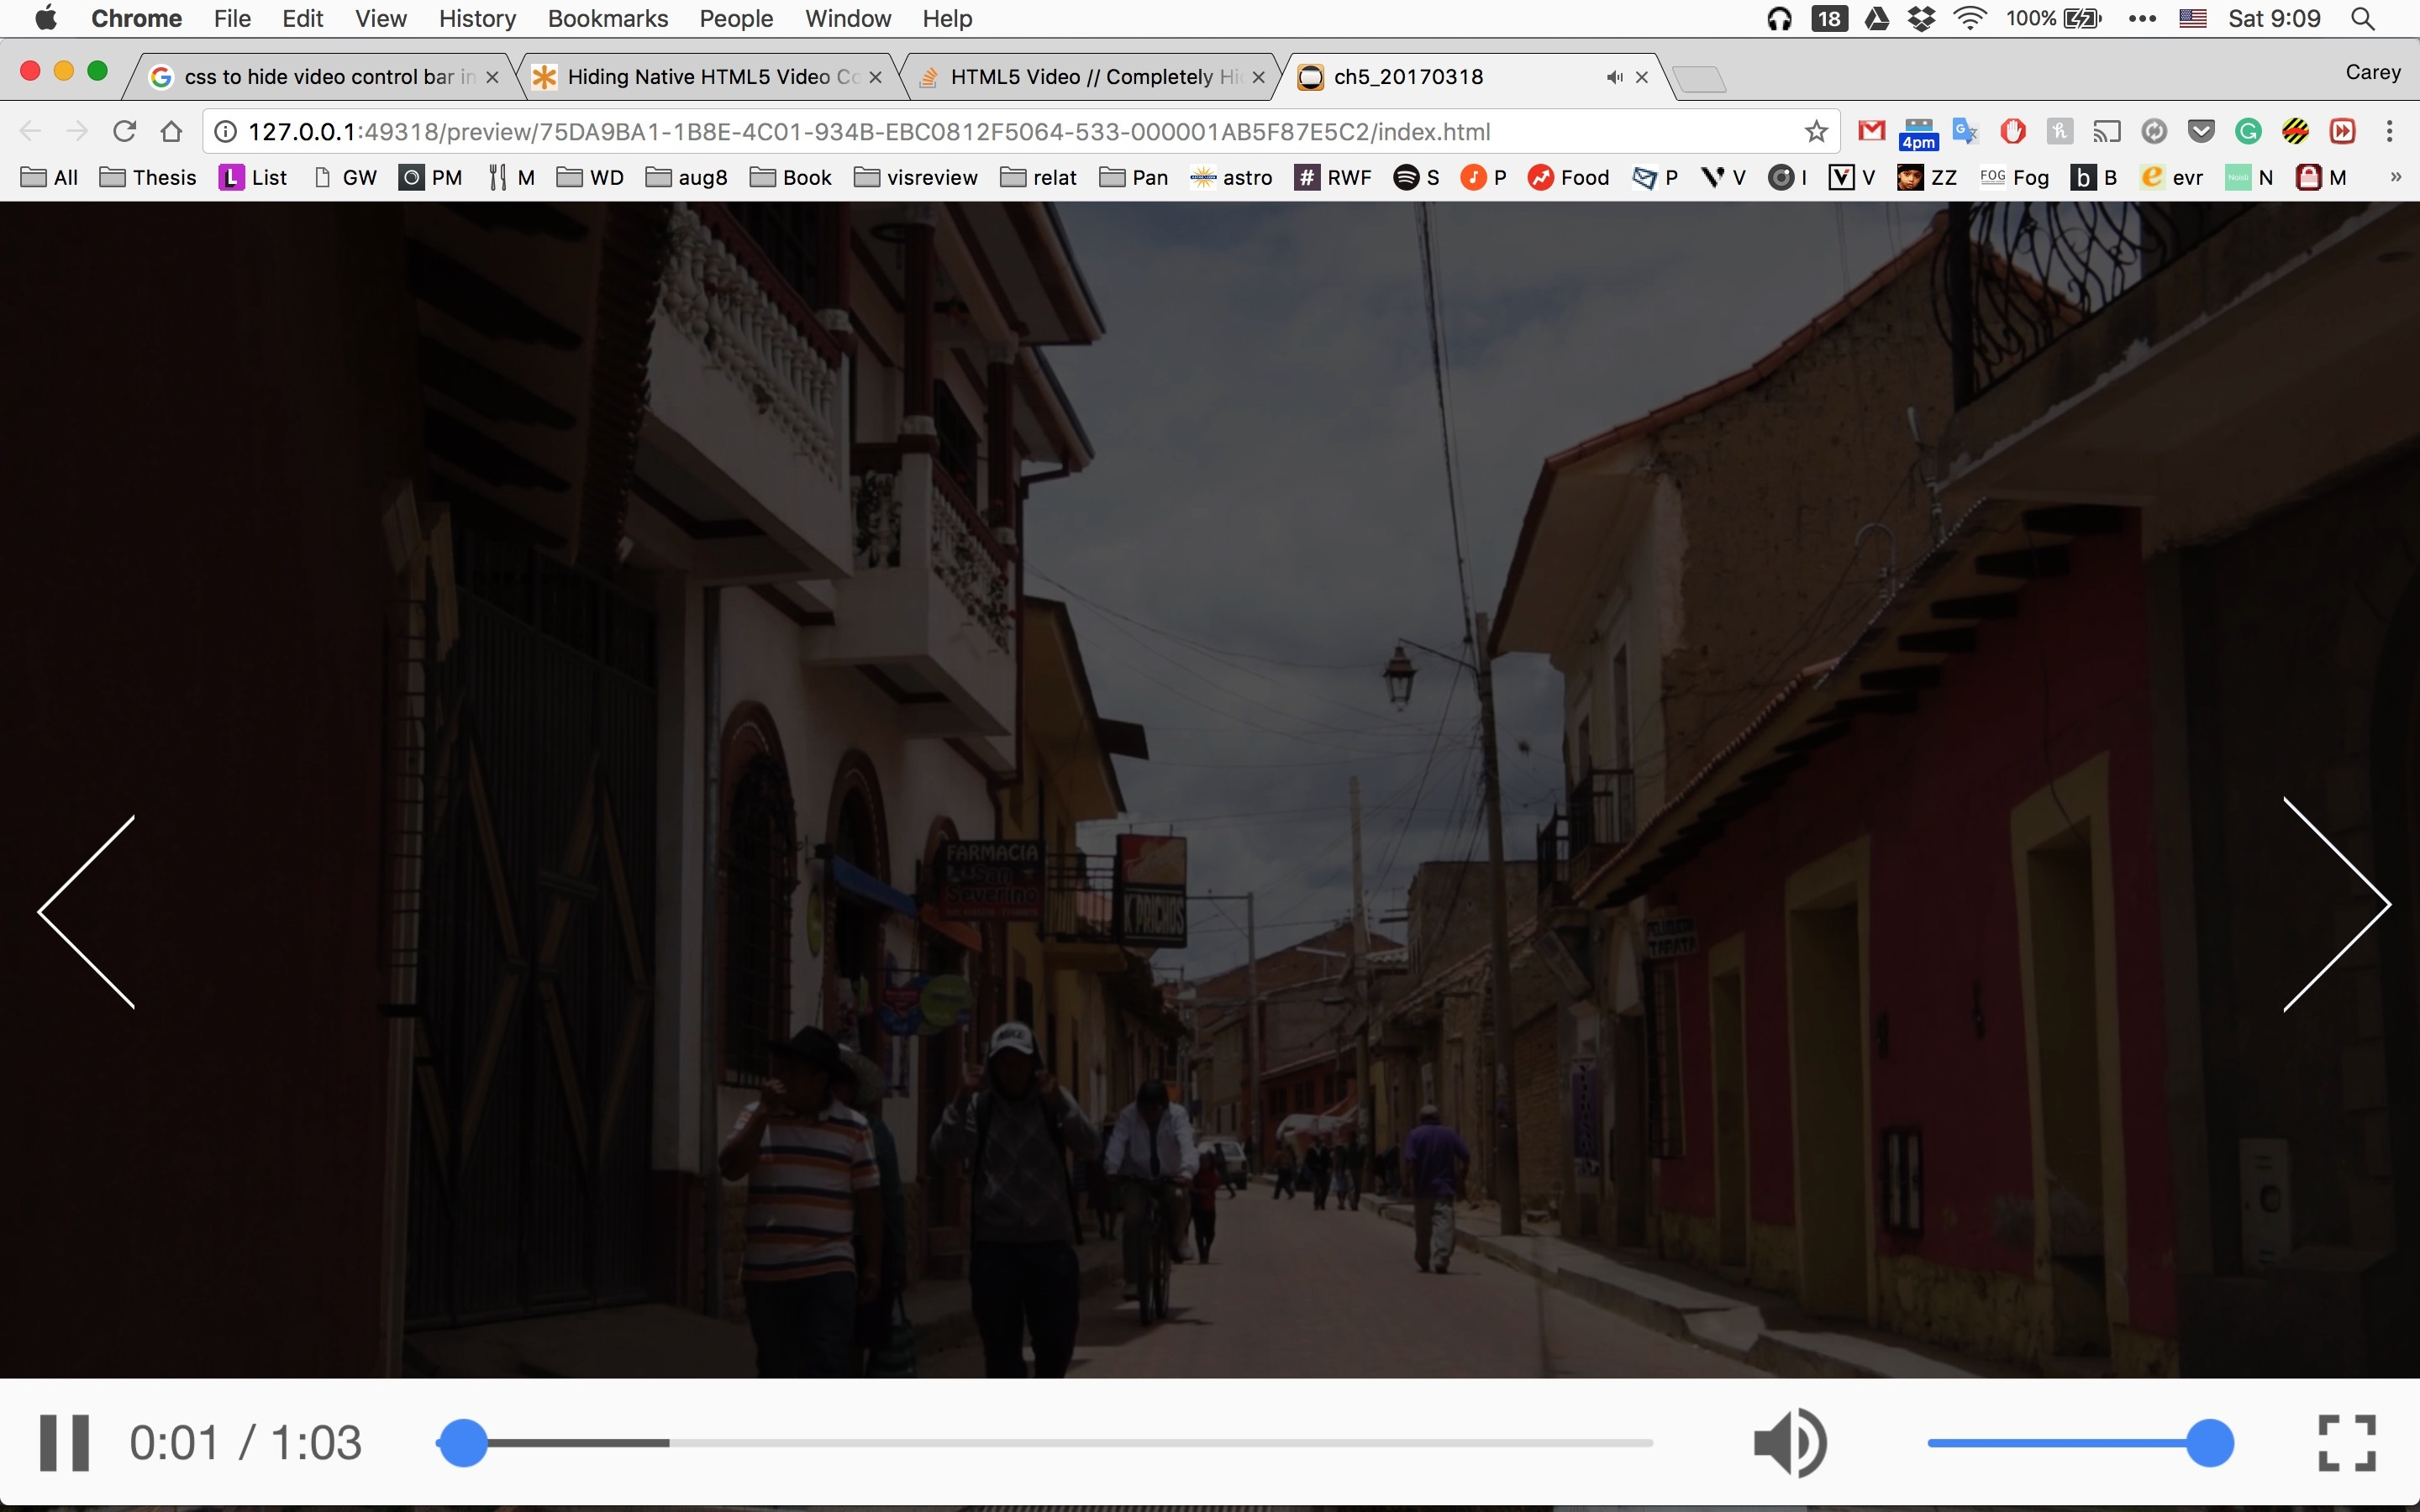 CSS | How to Hide Video Control Bar? - Tumult Forums